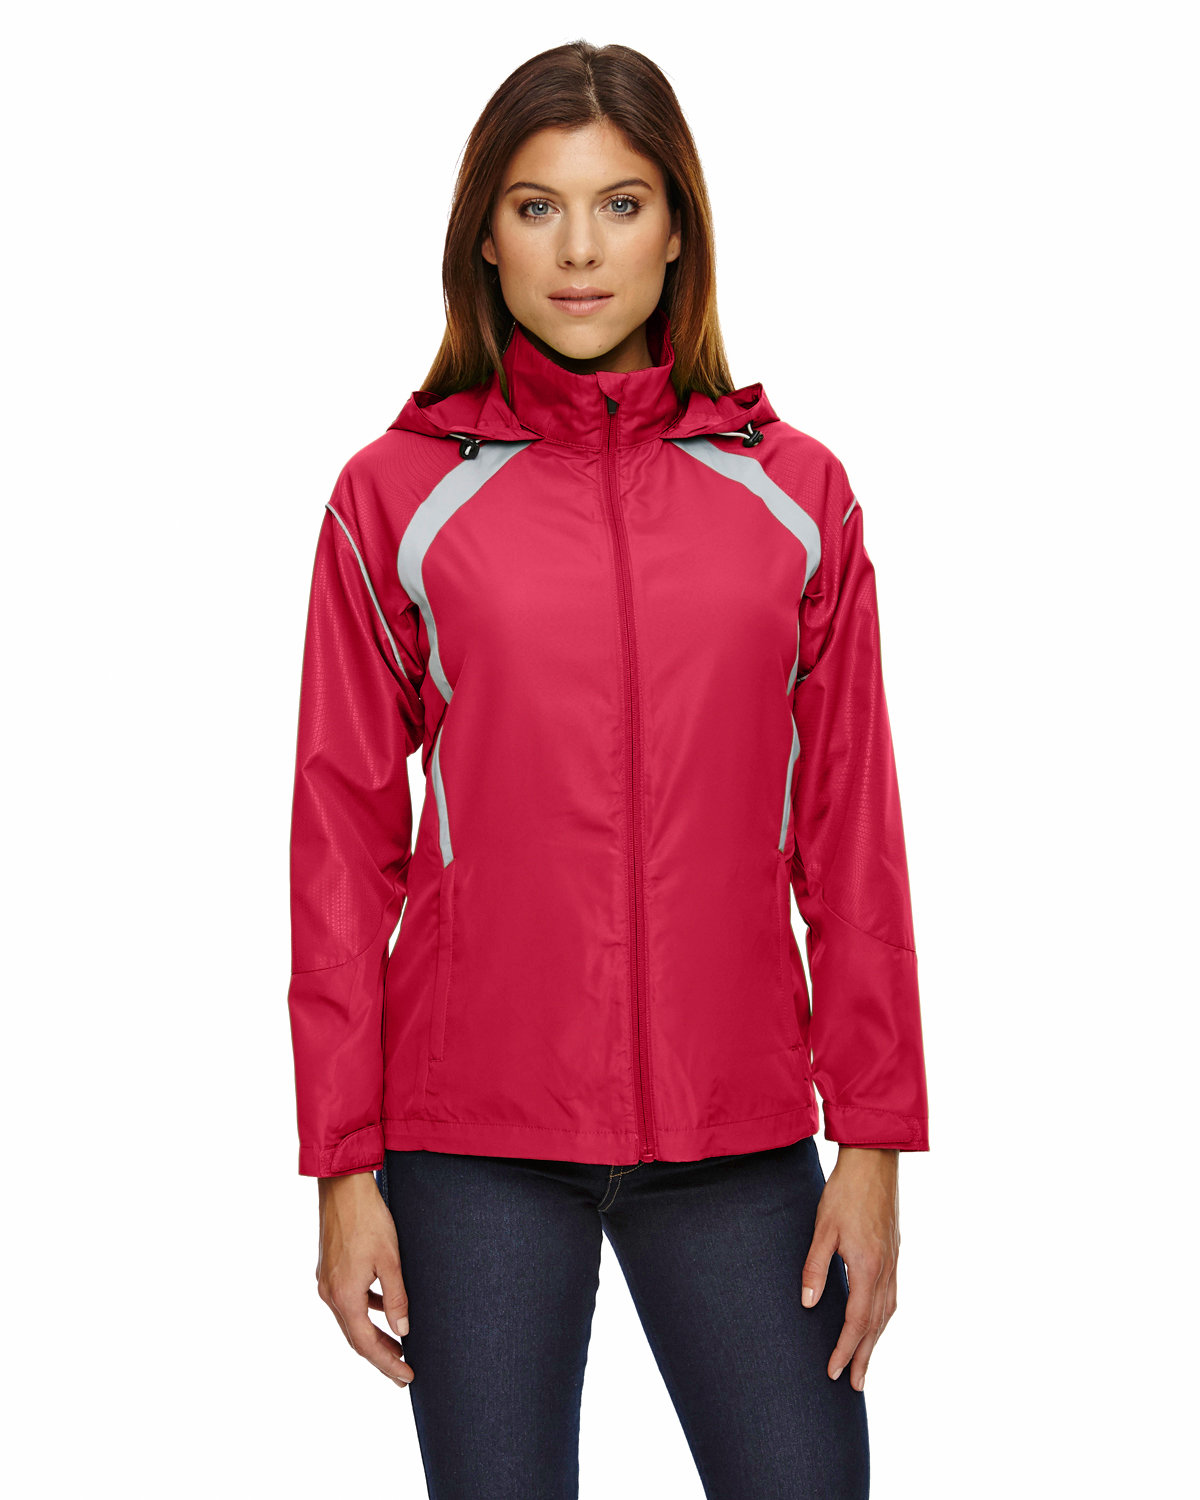 North End Ladies' Sirius Lightweight Jacket with Embossed Print OLYMPIC RED